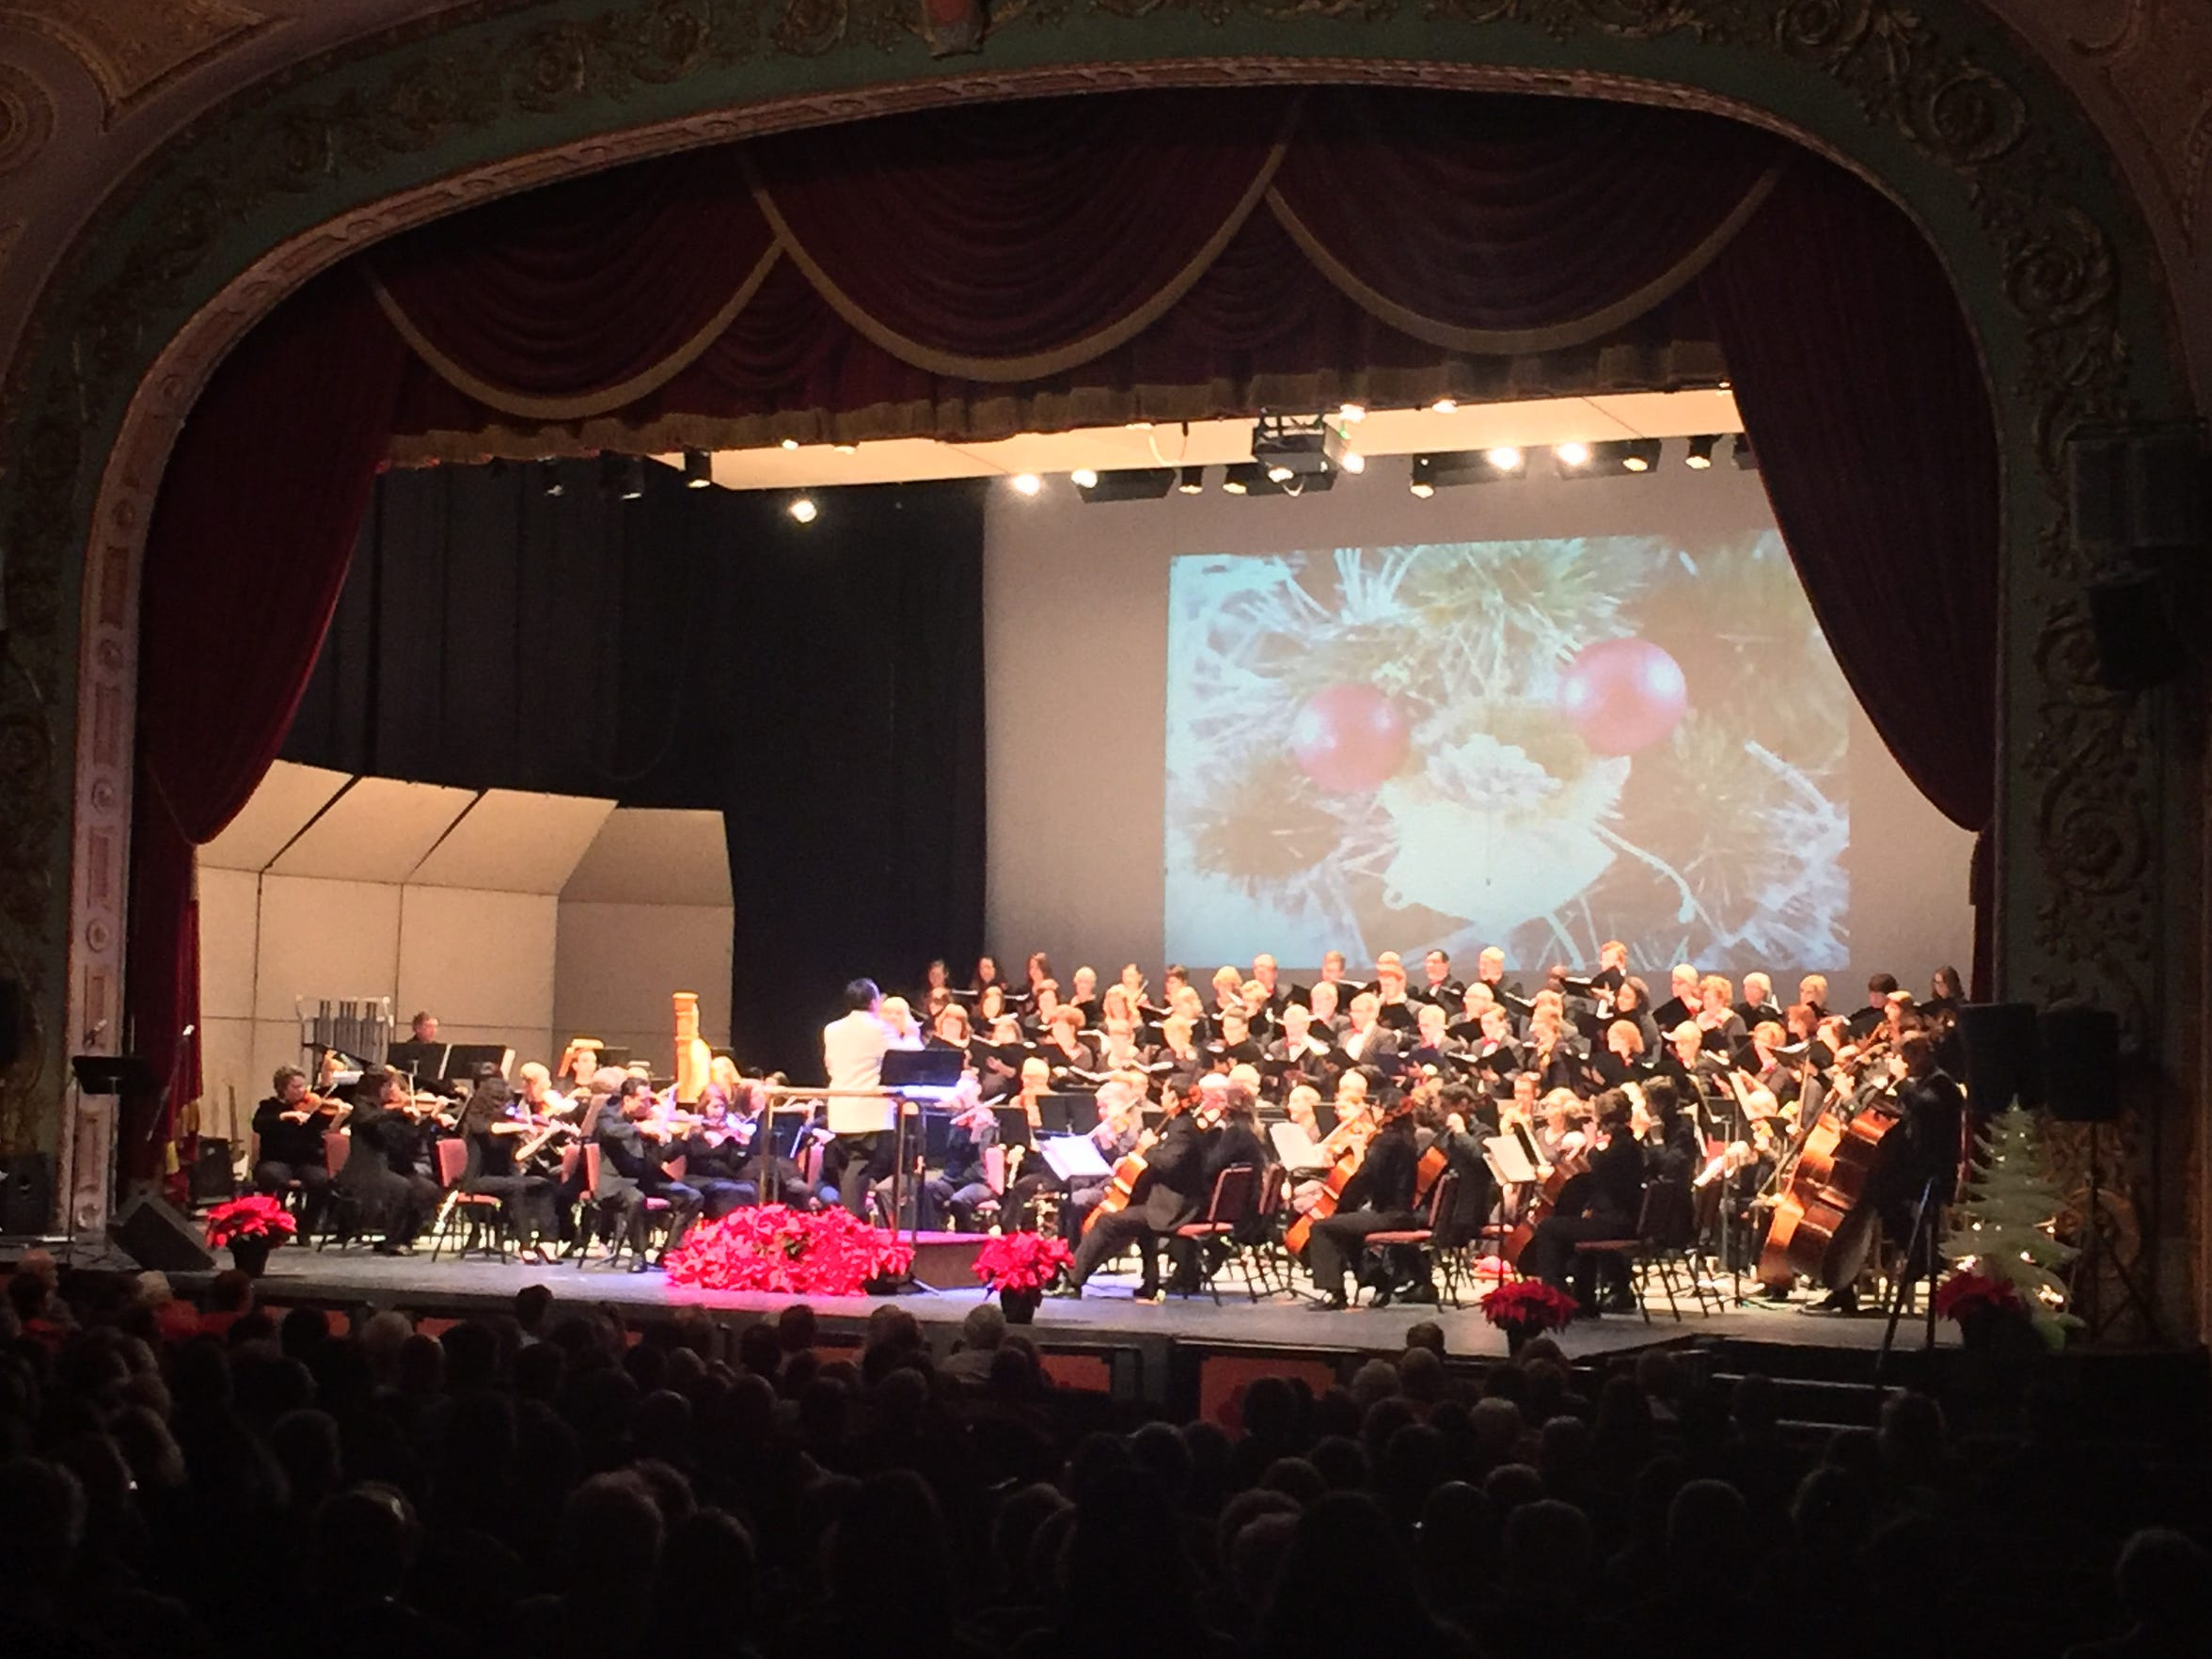 Mansfield Symphony and Mansfield Symphony Orchestra Chorus fill the house with holiday cheer during Sunday's Holiday Pops concert.